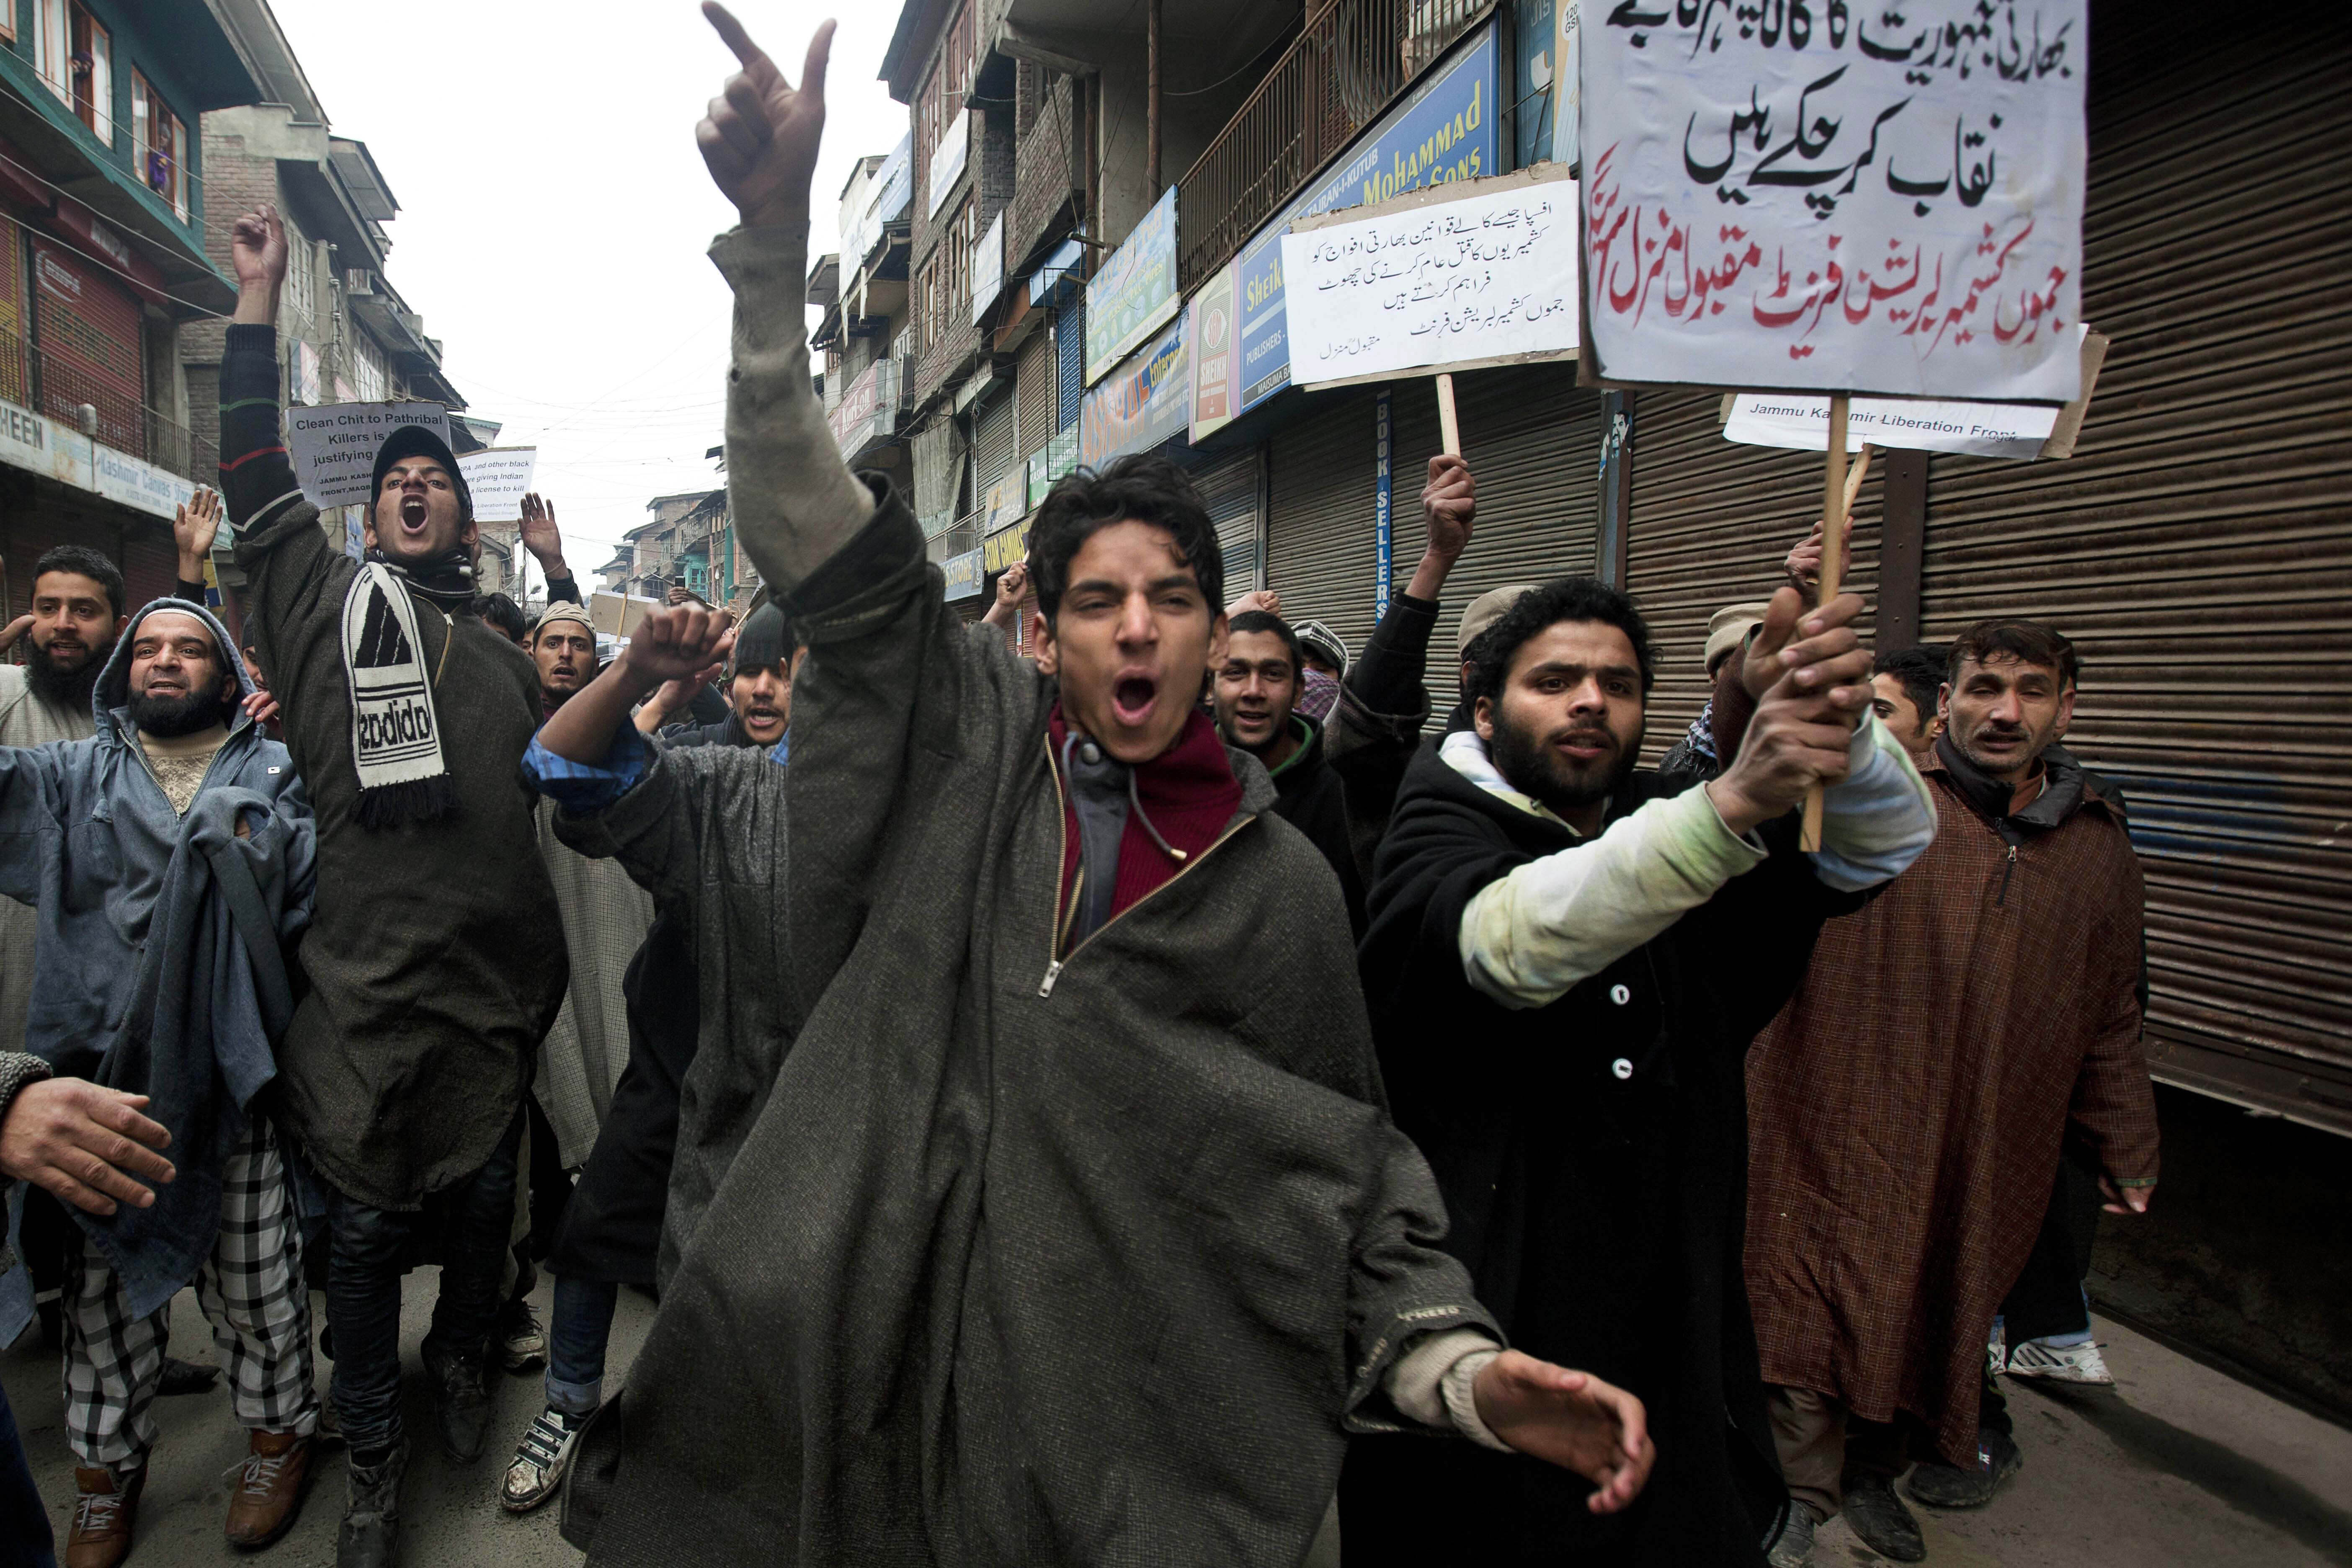 "FILE - In this Friday, Jan. 31, 2014, file photo, Activists of Jammu Kashmir Liberation Front (JKLF) shout slogans during a protest against the Indian army's decision to close a fake encounter case against five soldiers in connection with the killing of five Kashmiris in Pathribal in March 2000, in Srinagar, India. In a separate case, the Indian military on Friday, Sept. 18, said its soldiers in Kashmir exceeded their legal powers in the killings of three local men it had described as Pakistani terrorists on July 18, 2020. Police ordered an investigation into the accusation of a staged gunbattle, and the results have not yet been released. The results of the police probe are likely to spark an outcry among Kashmiri activists who for years have accused Indian troops of abusing their powers and repeatedly targeting civilians. Placard at background right reads, ""AFSPA and other black laws are giving Indian soldiers a license to kill."" (AP Photo/Dar Yasin)"